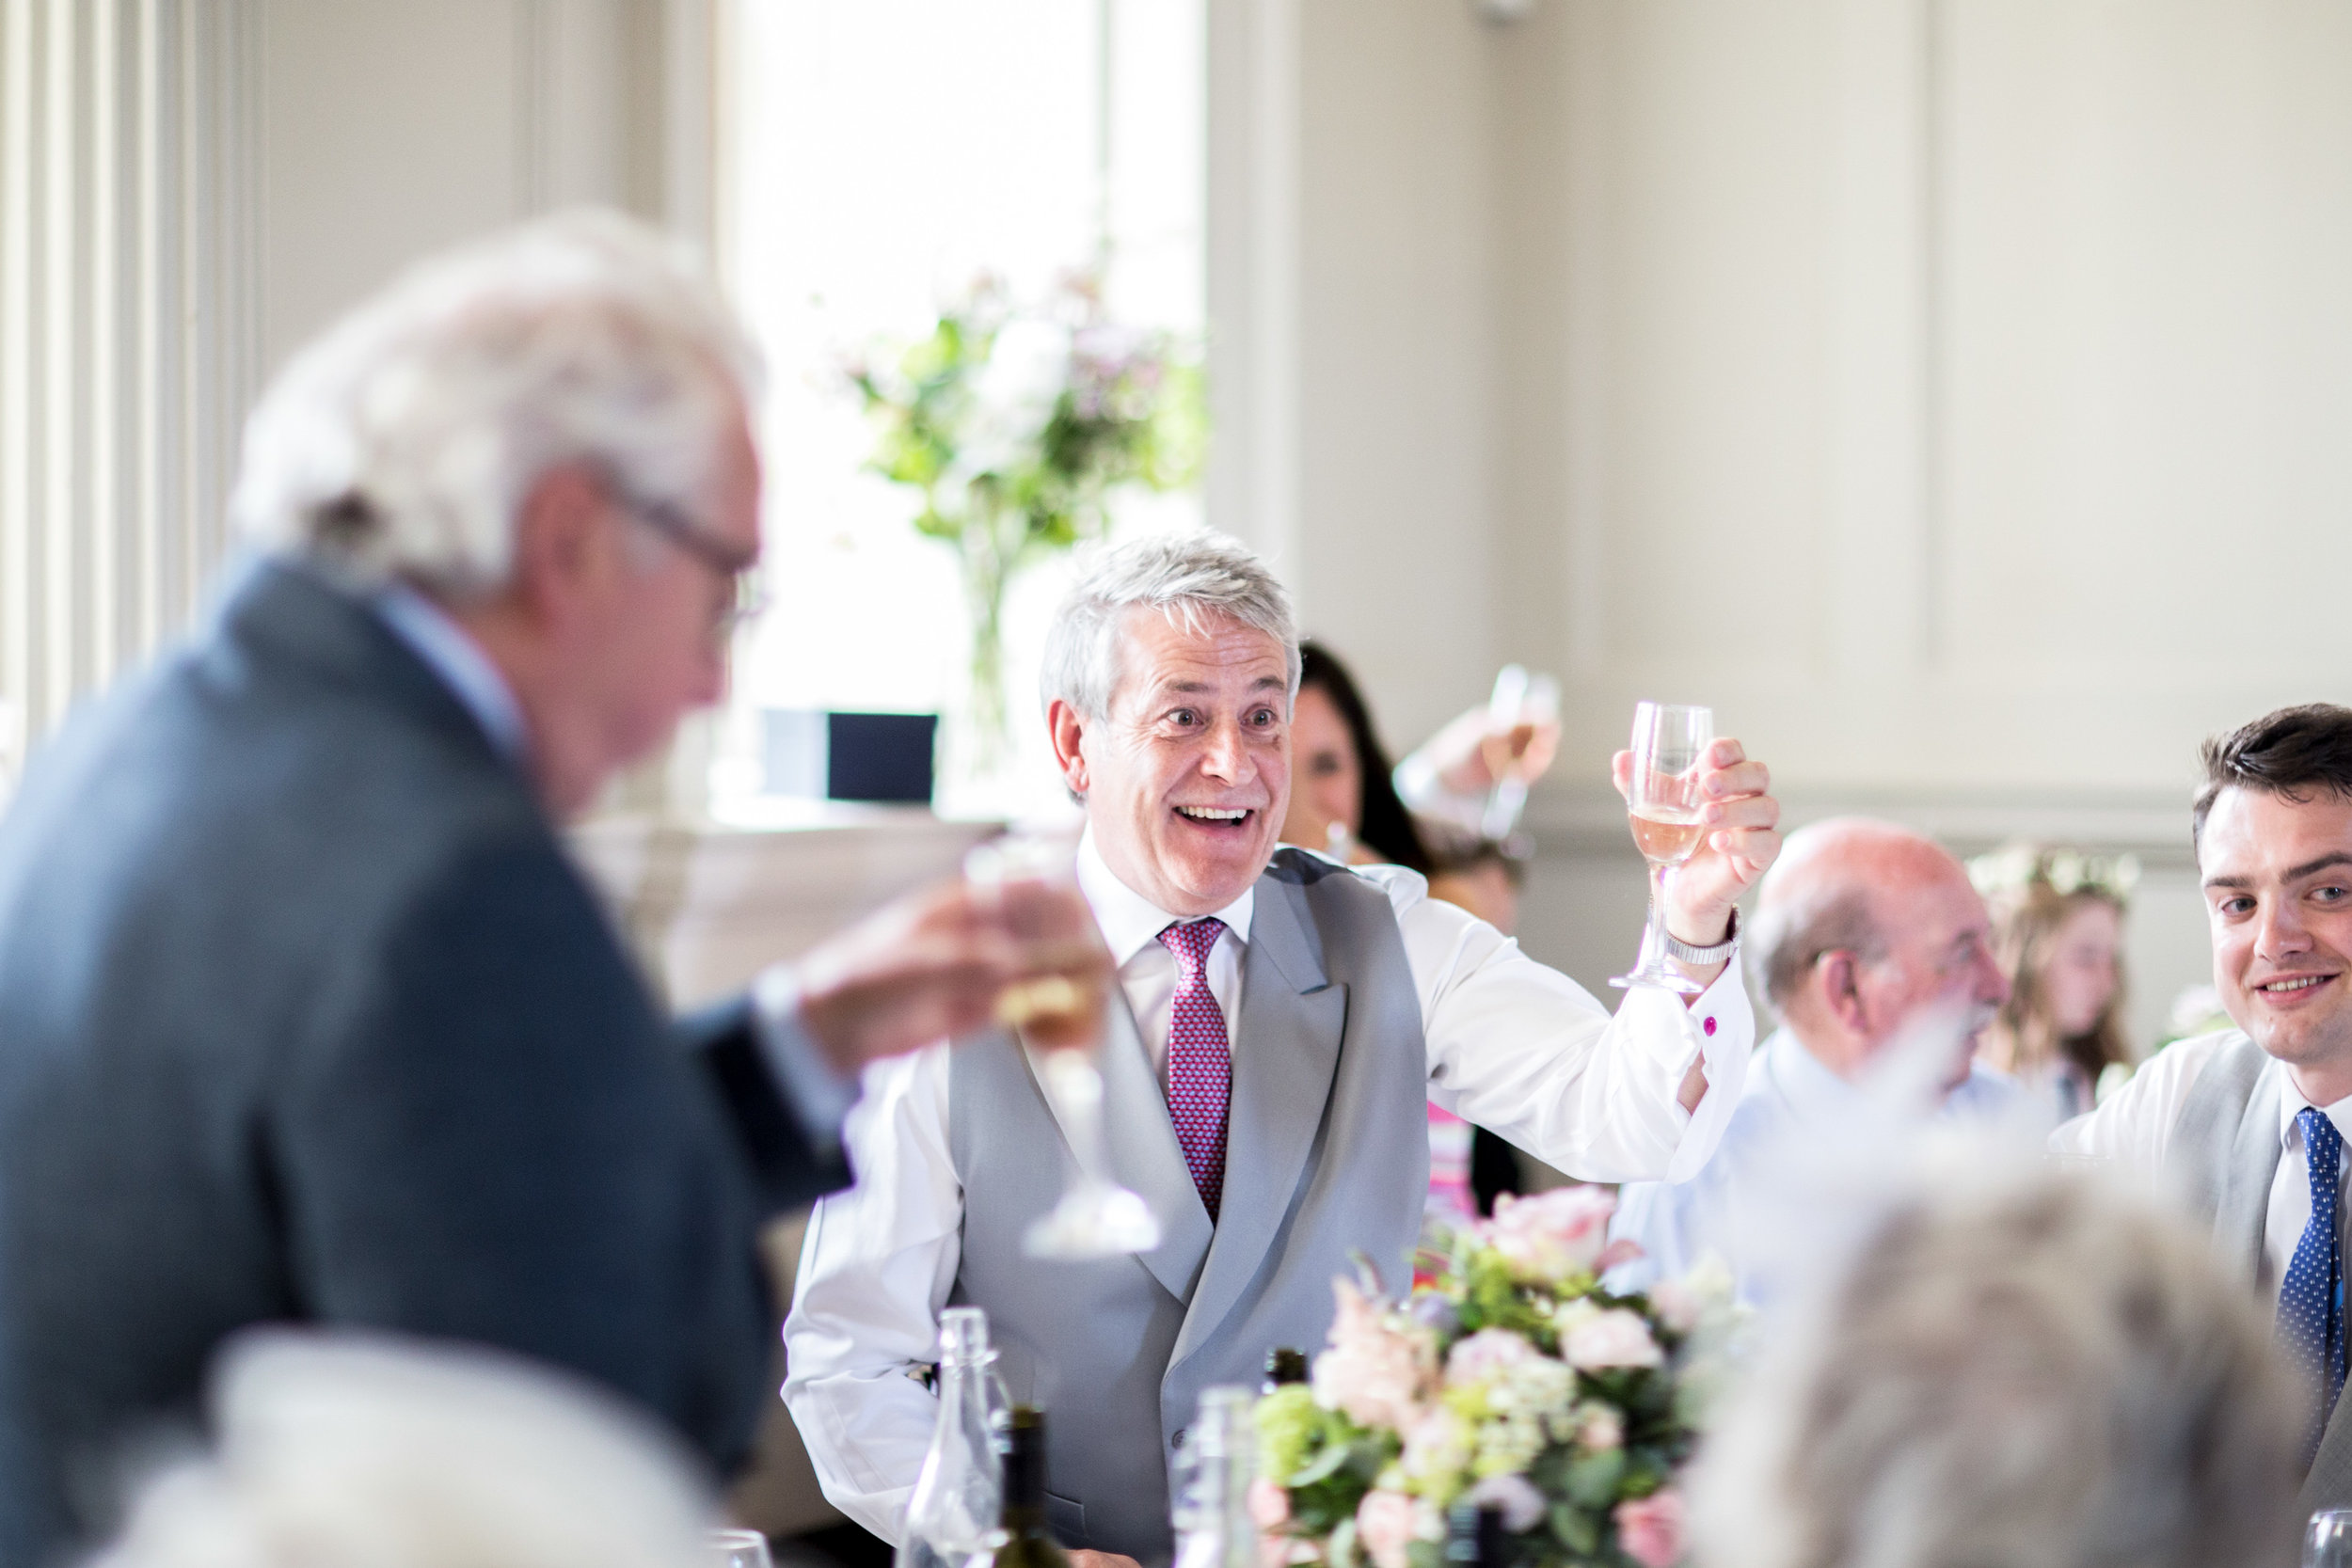 FOTB, Cheers, Champagne, Wedding Breakfast, Wedding Speeches,